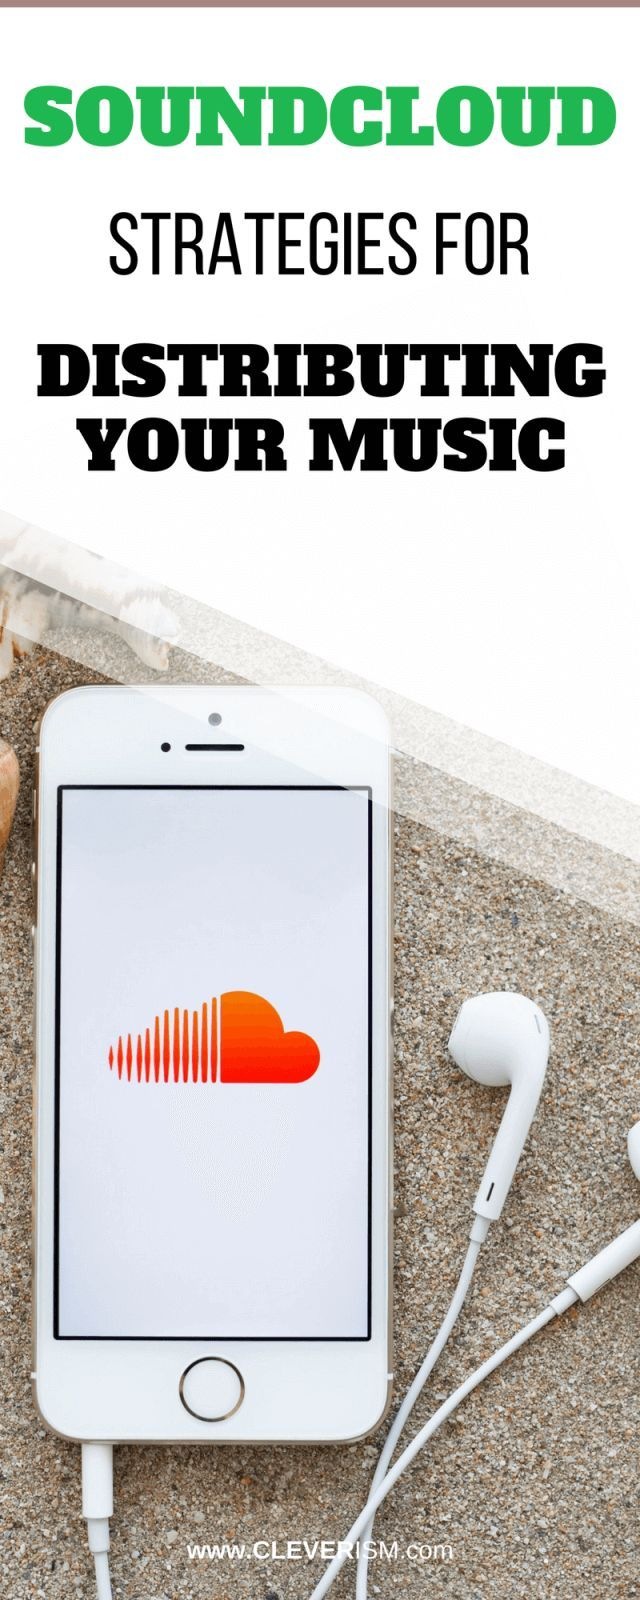 SoundCloud – Strategies for Distributing your music